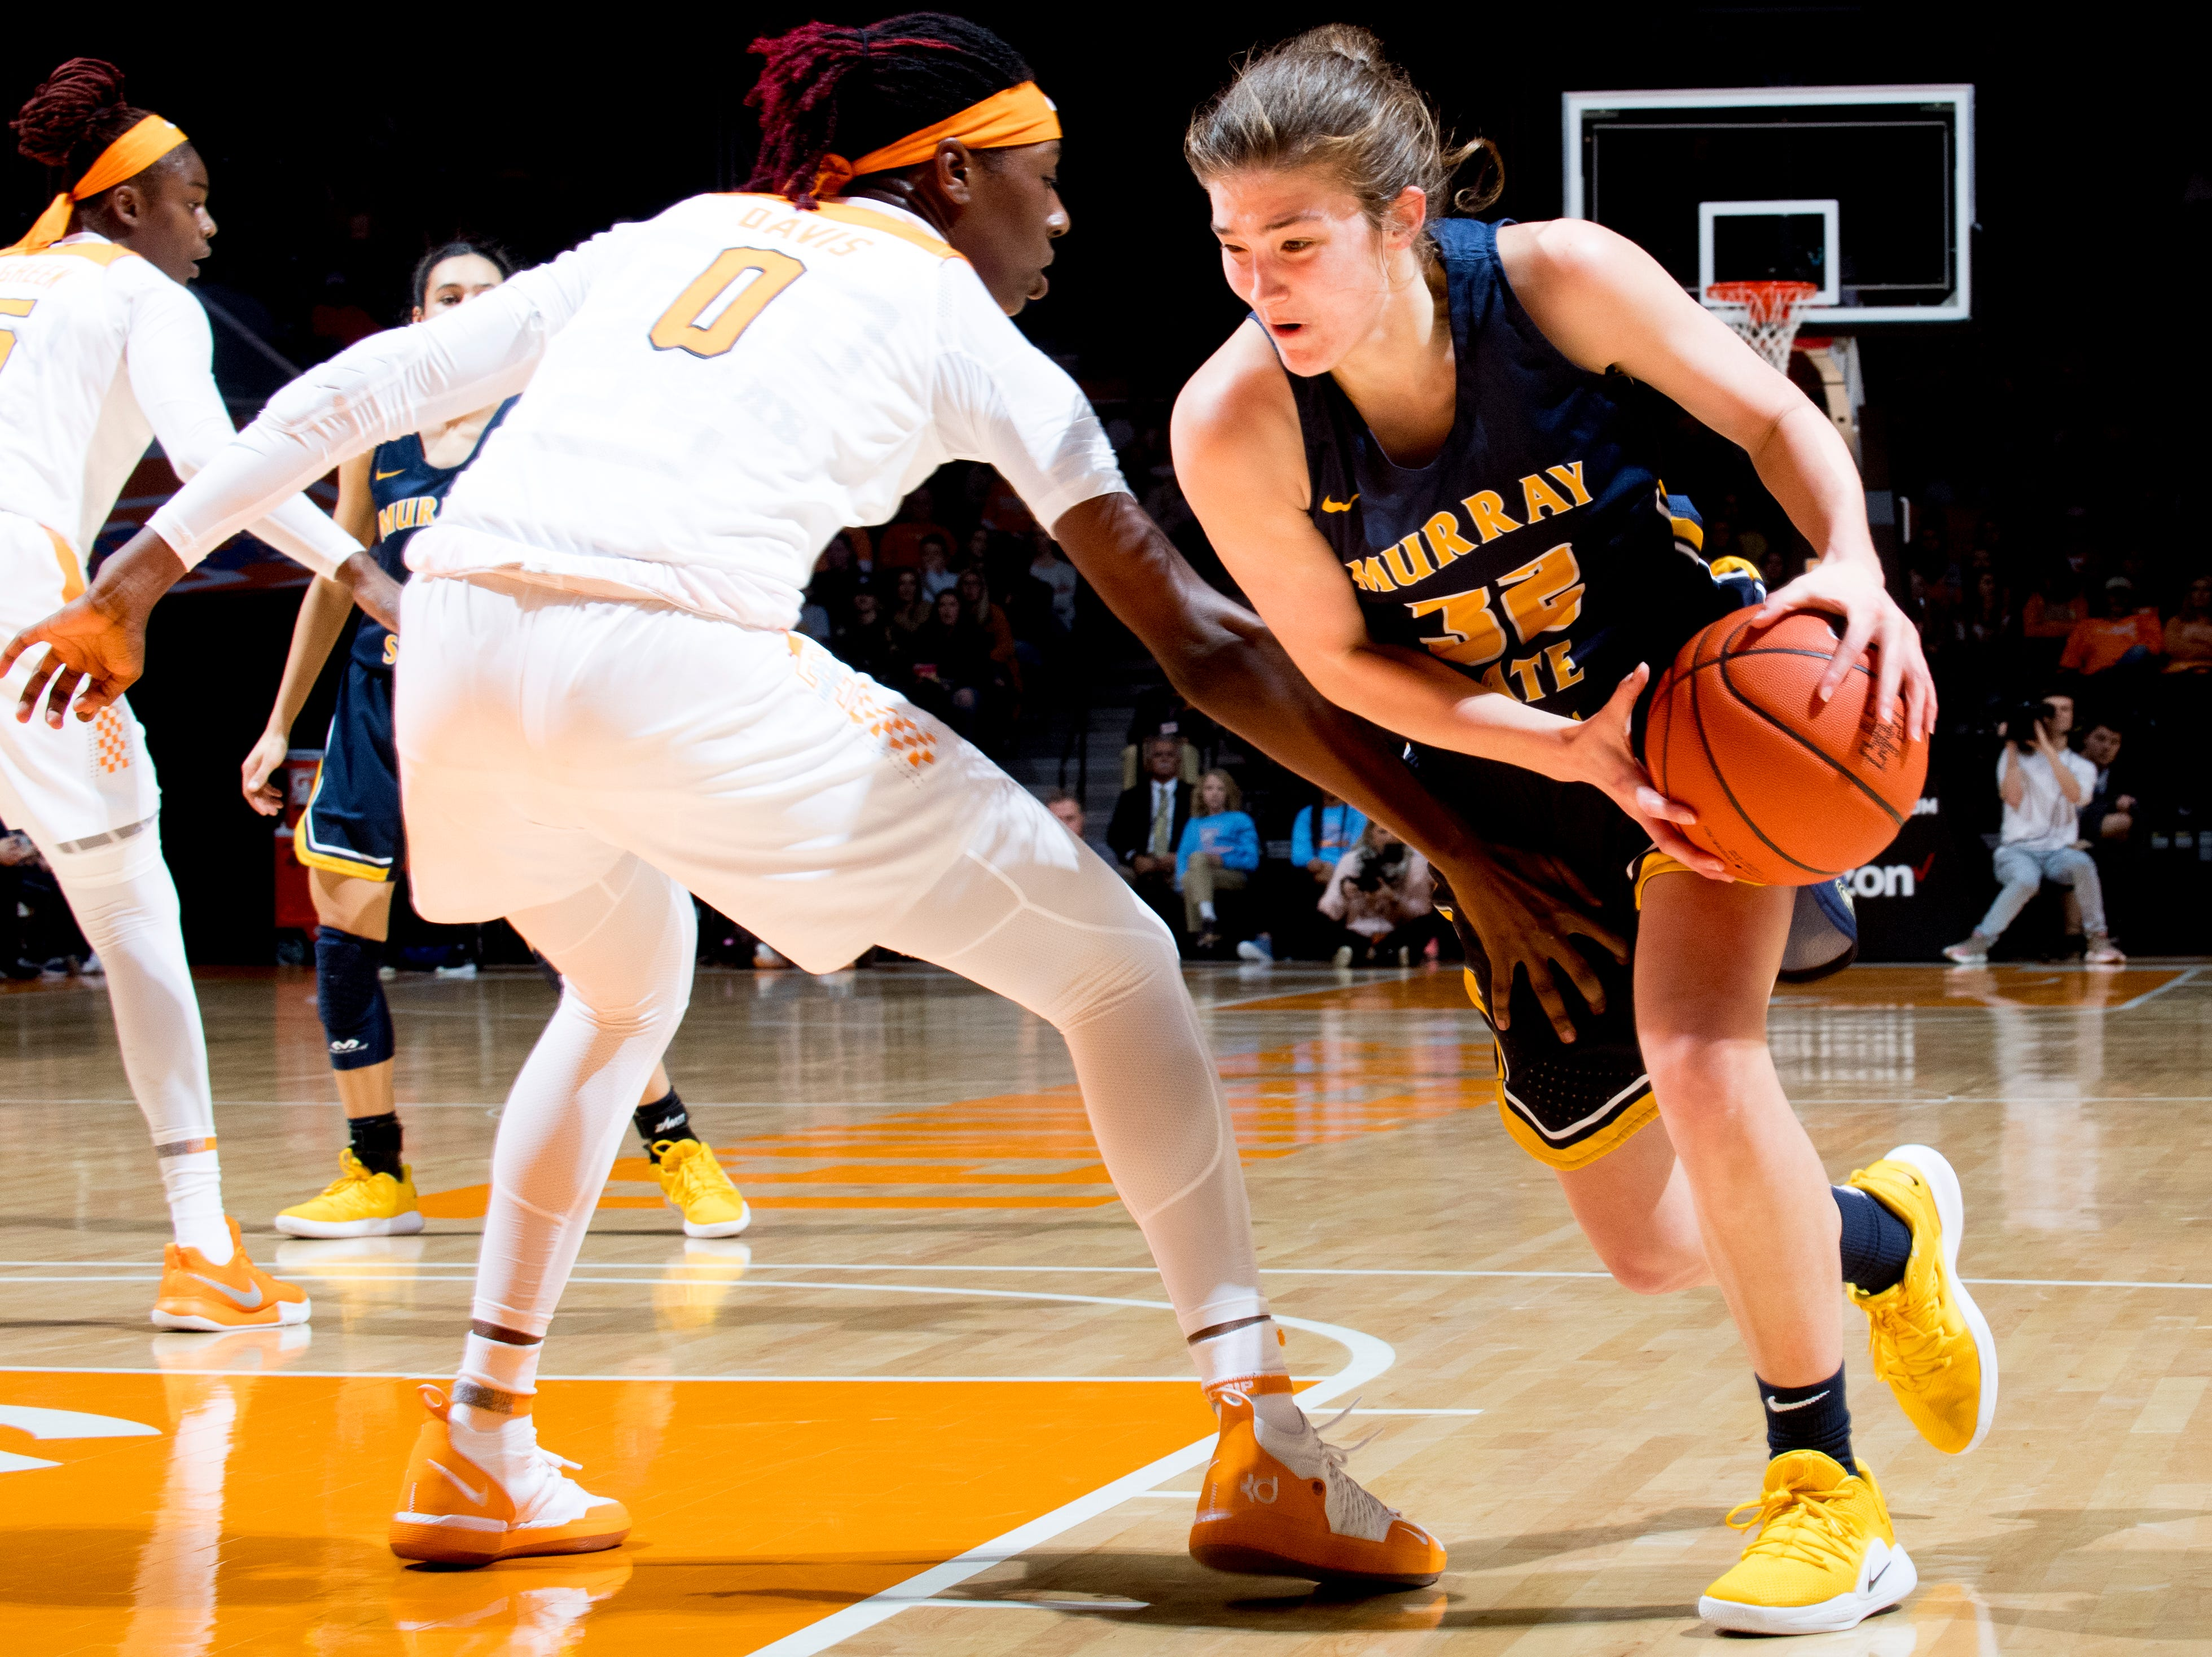 Murray State forward/guard Alexis Burpo (32) dribbles past Tennessee guard/forward Rennia Davis (0) during a game between the Tennessee Lady Vols and Murray State at Thompson-Boling Arena in Knoxville, Tennessee on Friday, December 28, 2018.